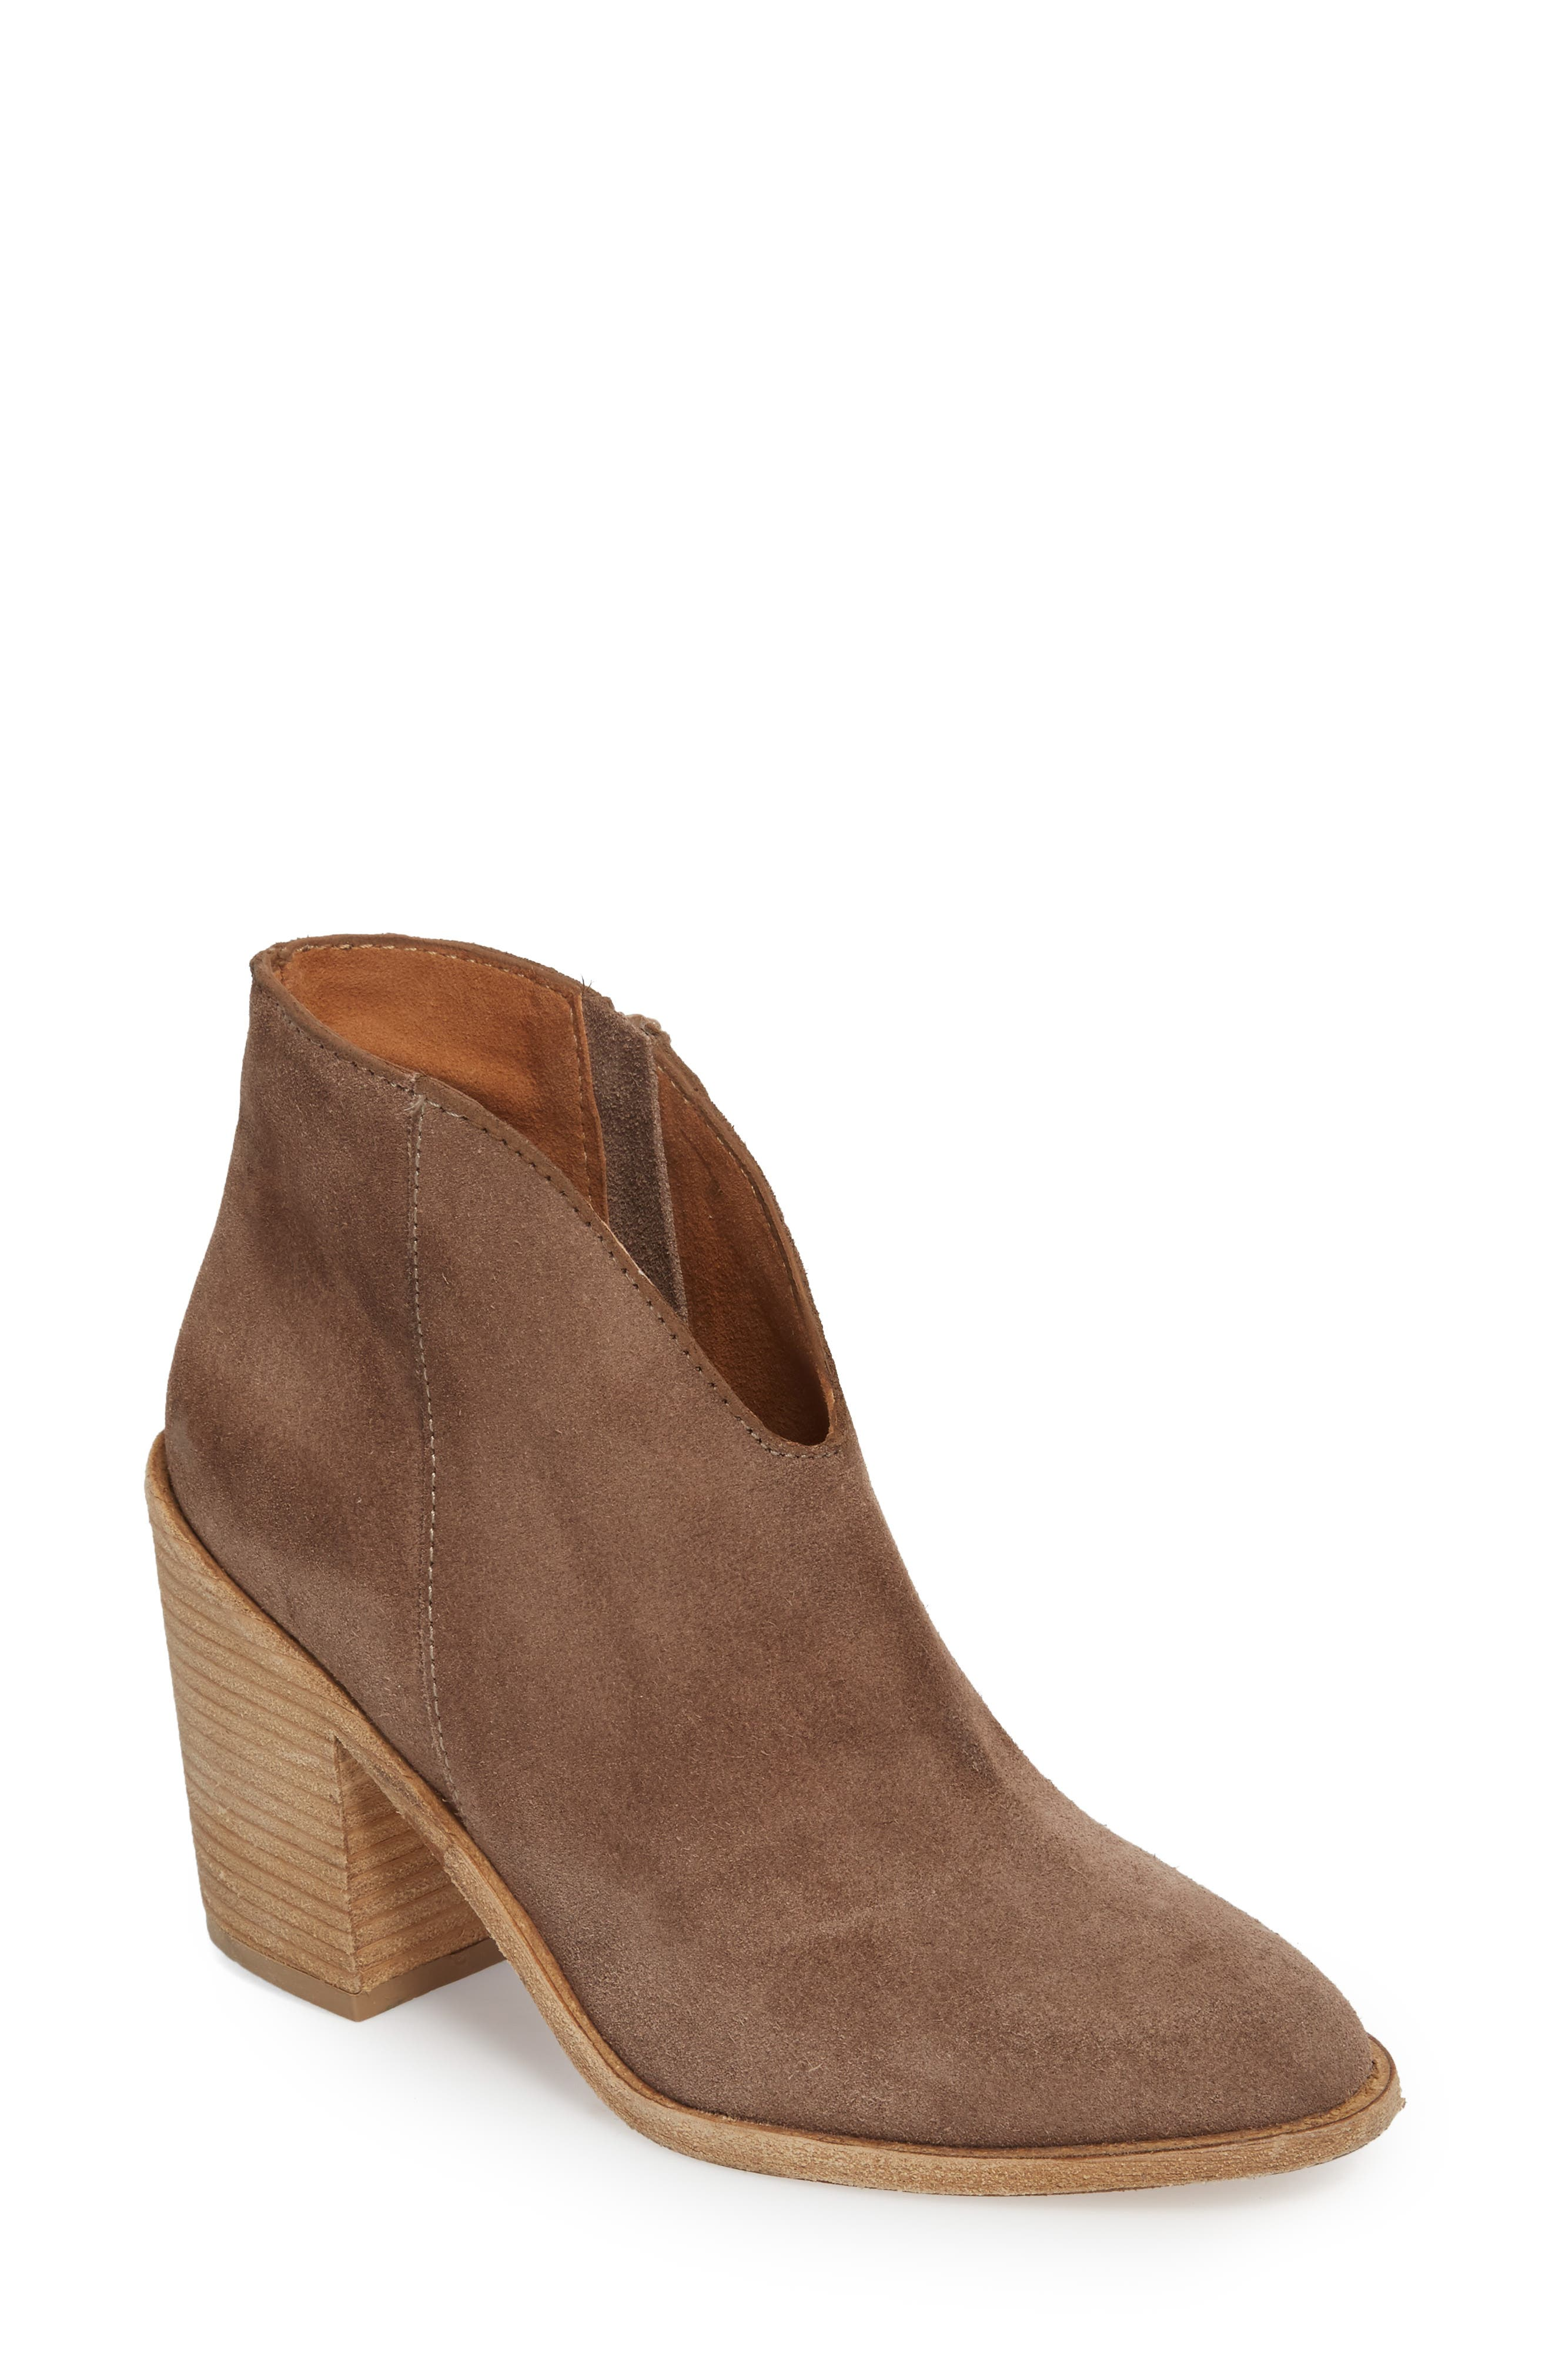 Kamet Bootie,                             Main thumbnail 1, color,                             Taupe Oiled Suede